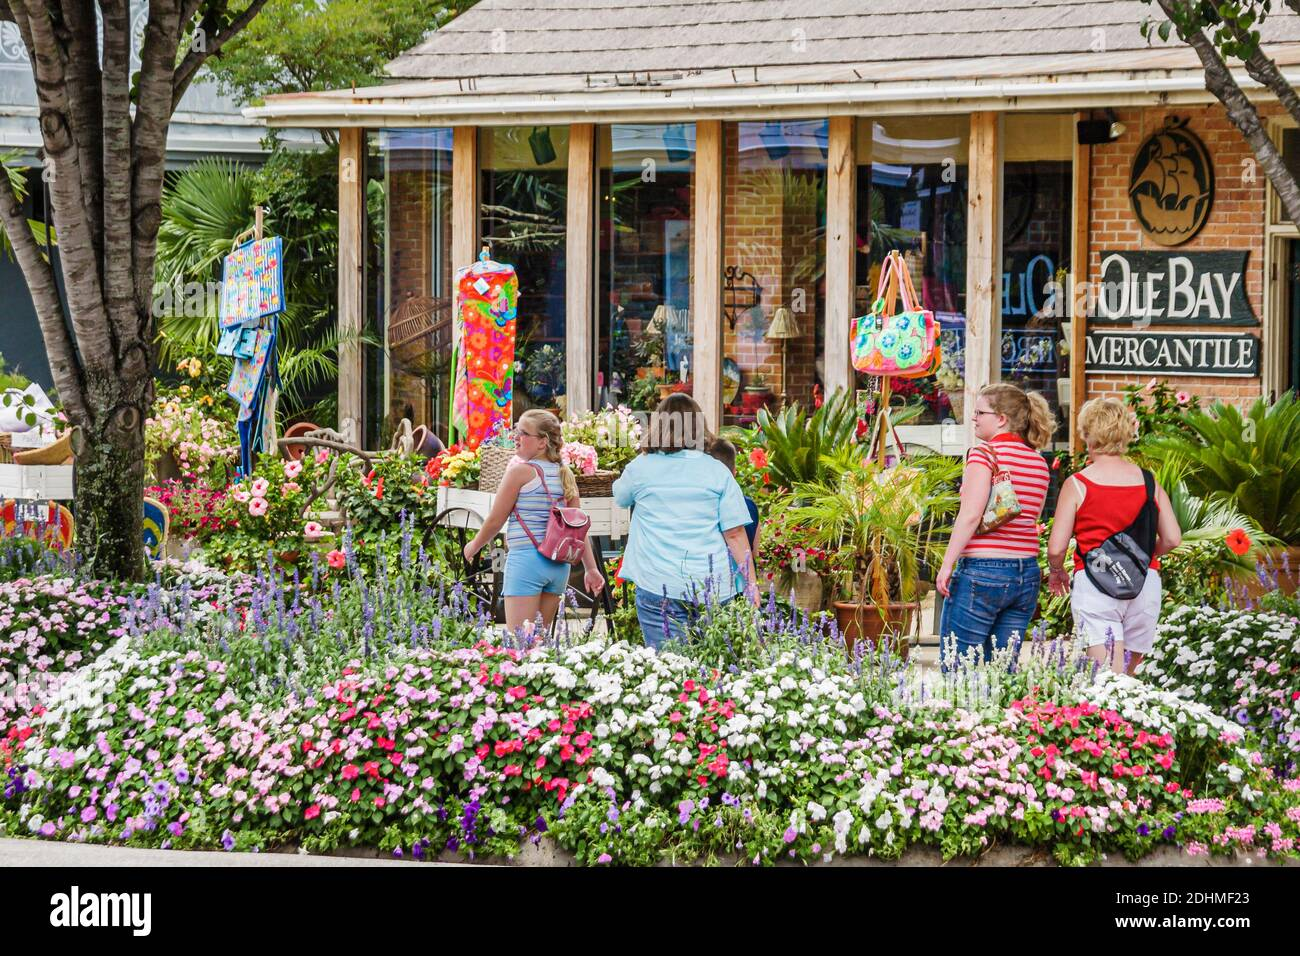 Alabama Shopping Shopper Shoppers Shop Shops High Resolution Stock Photography And Images Alamy